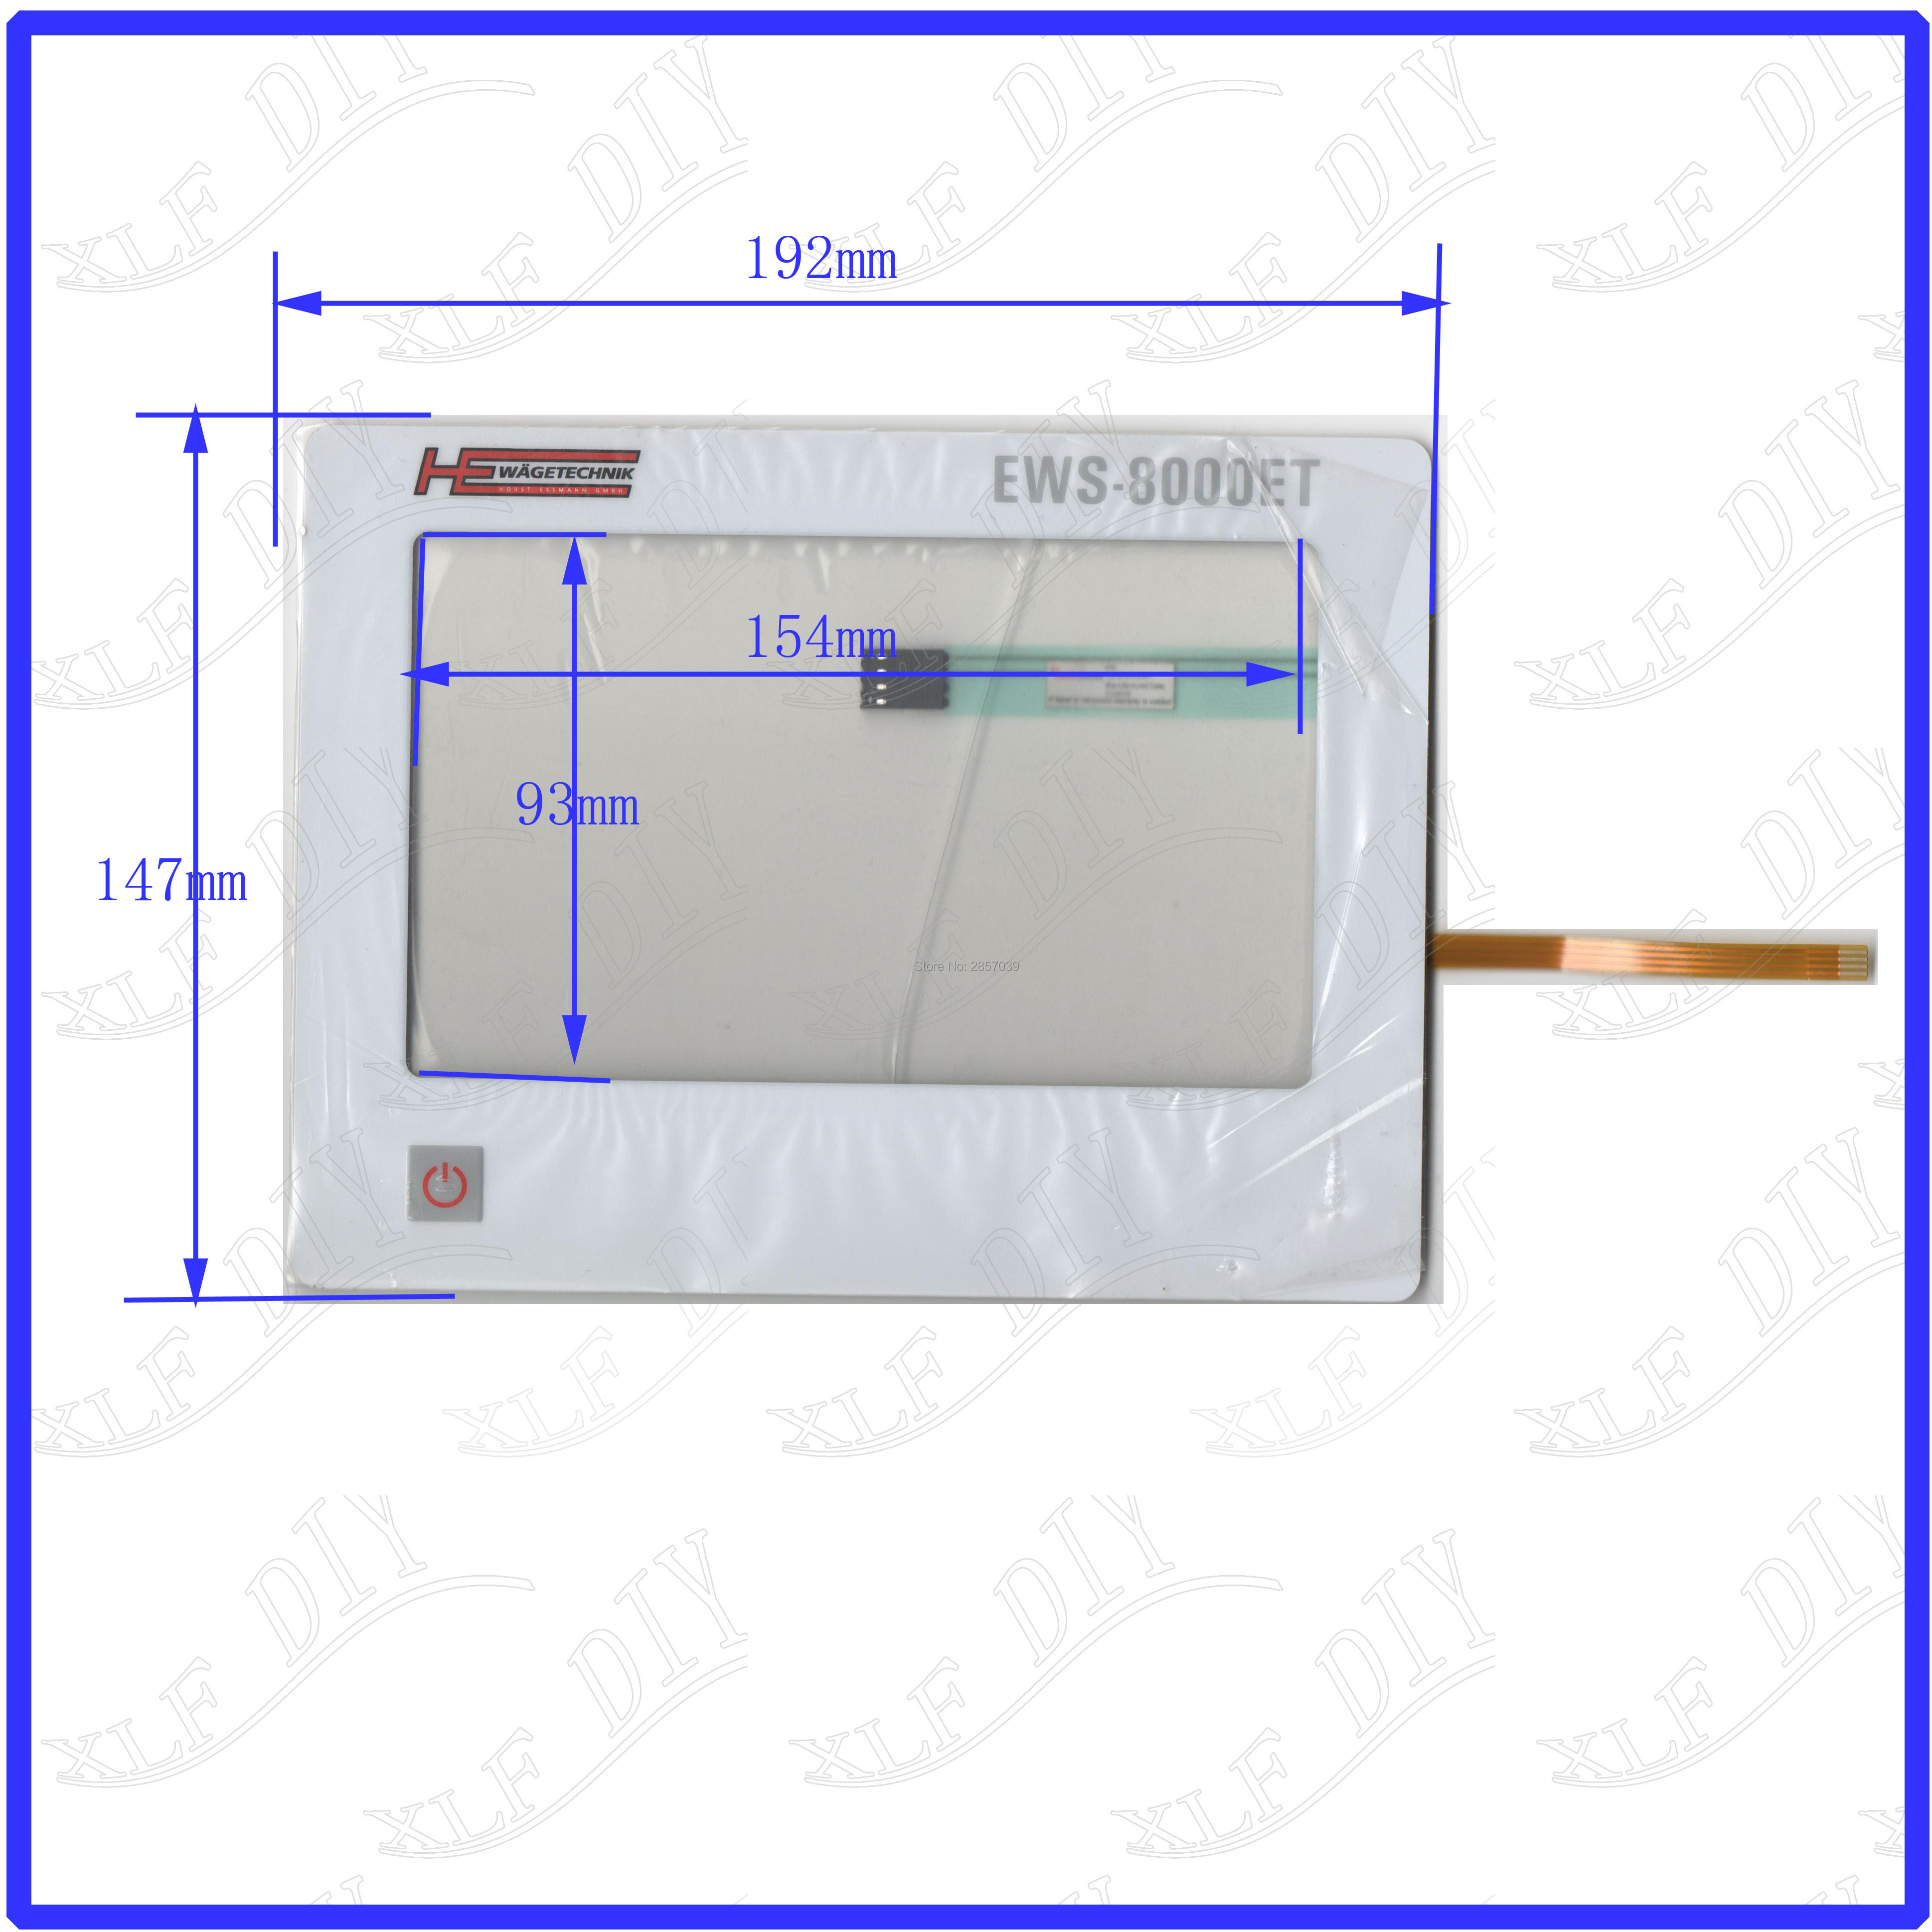 EWS-8000ET USED WAGETECHNIK Membrane key panel 7 inch touchsensor glass New Touch Screen Replace zhiyusun for iq701 new 8 inch touch screen panel touch glass this is compatible touchsensor 124 5 173